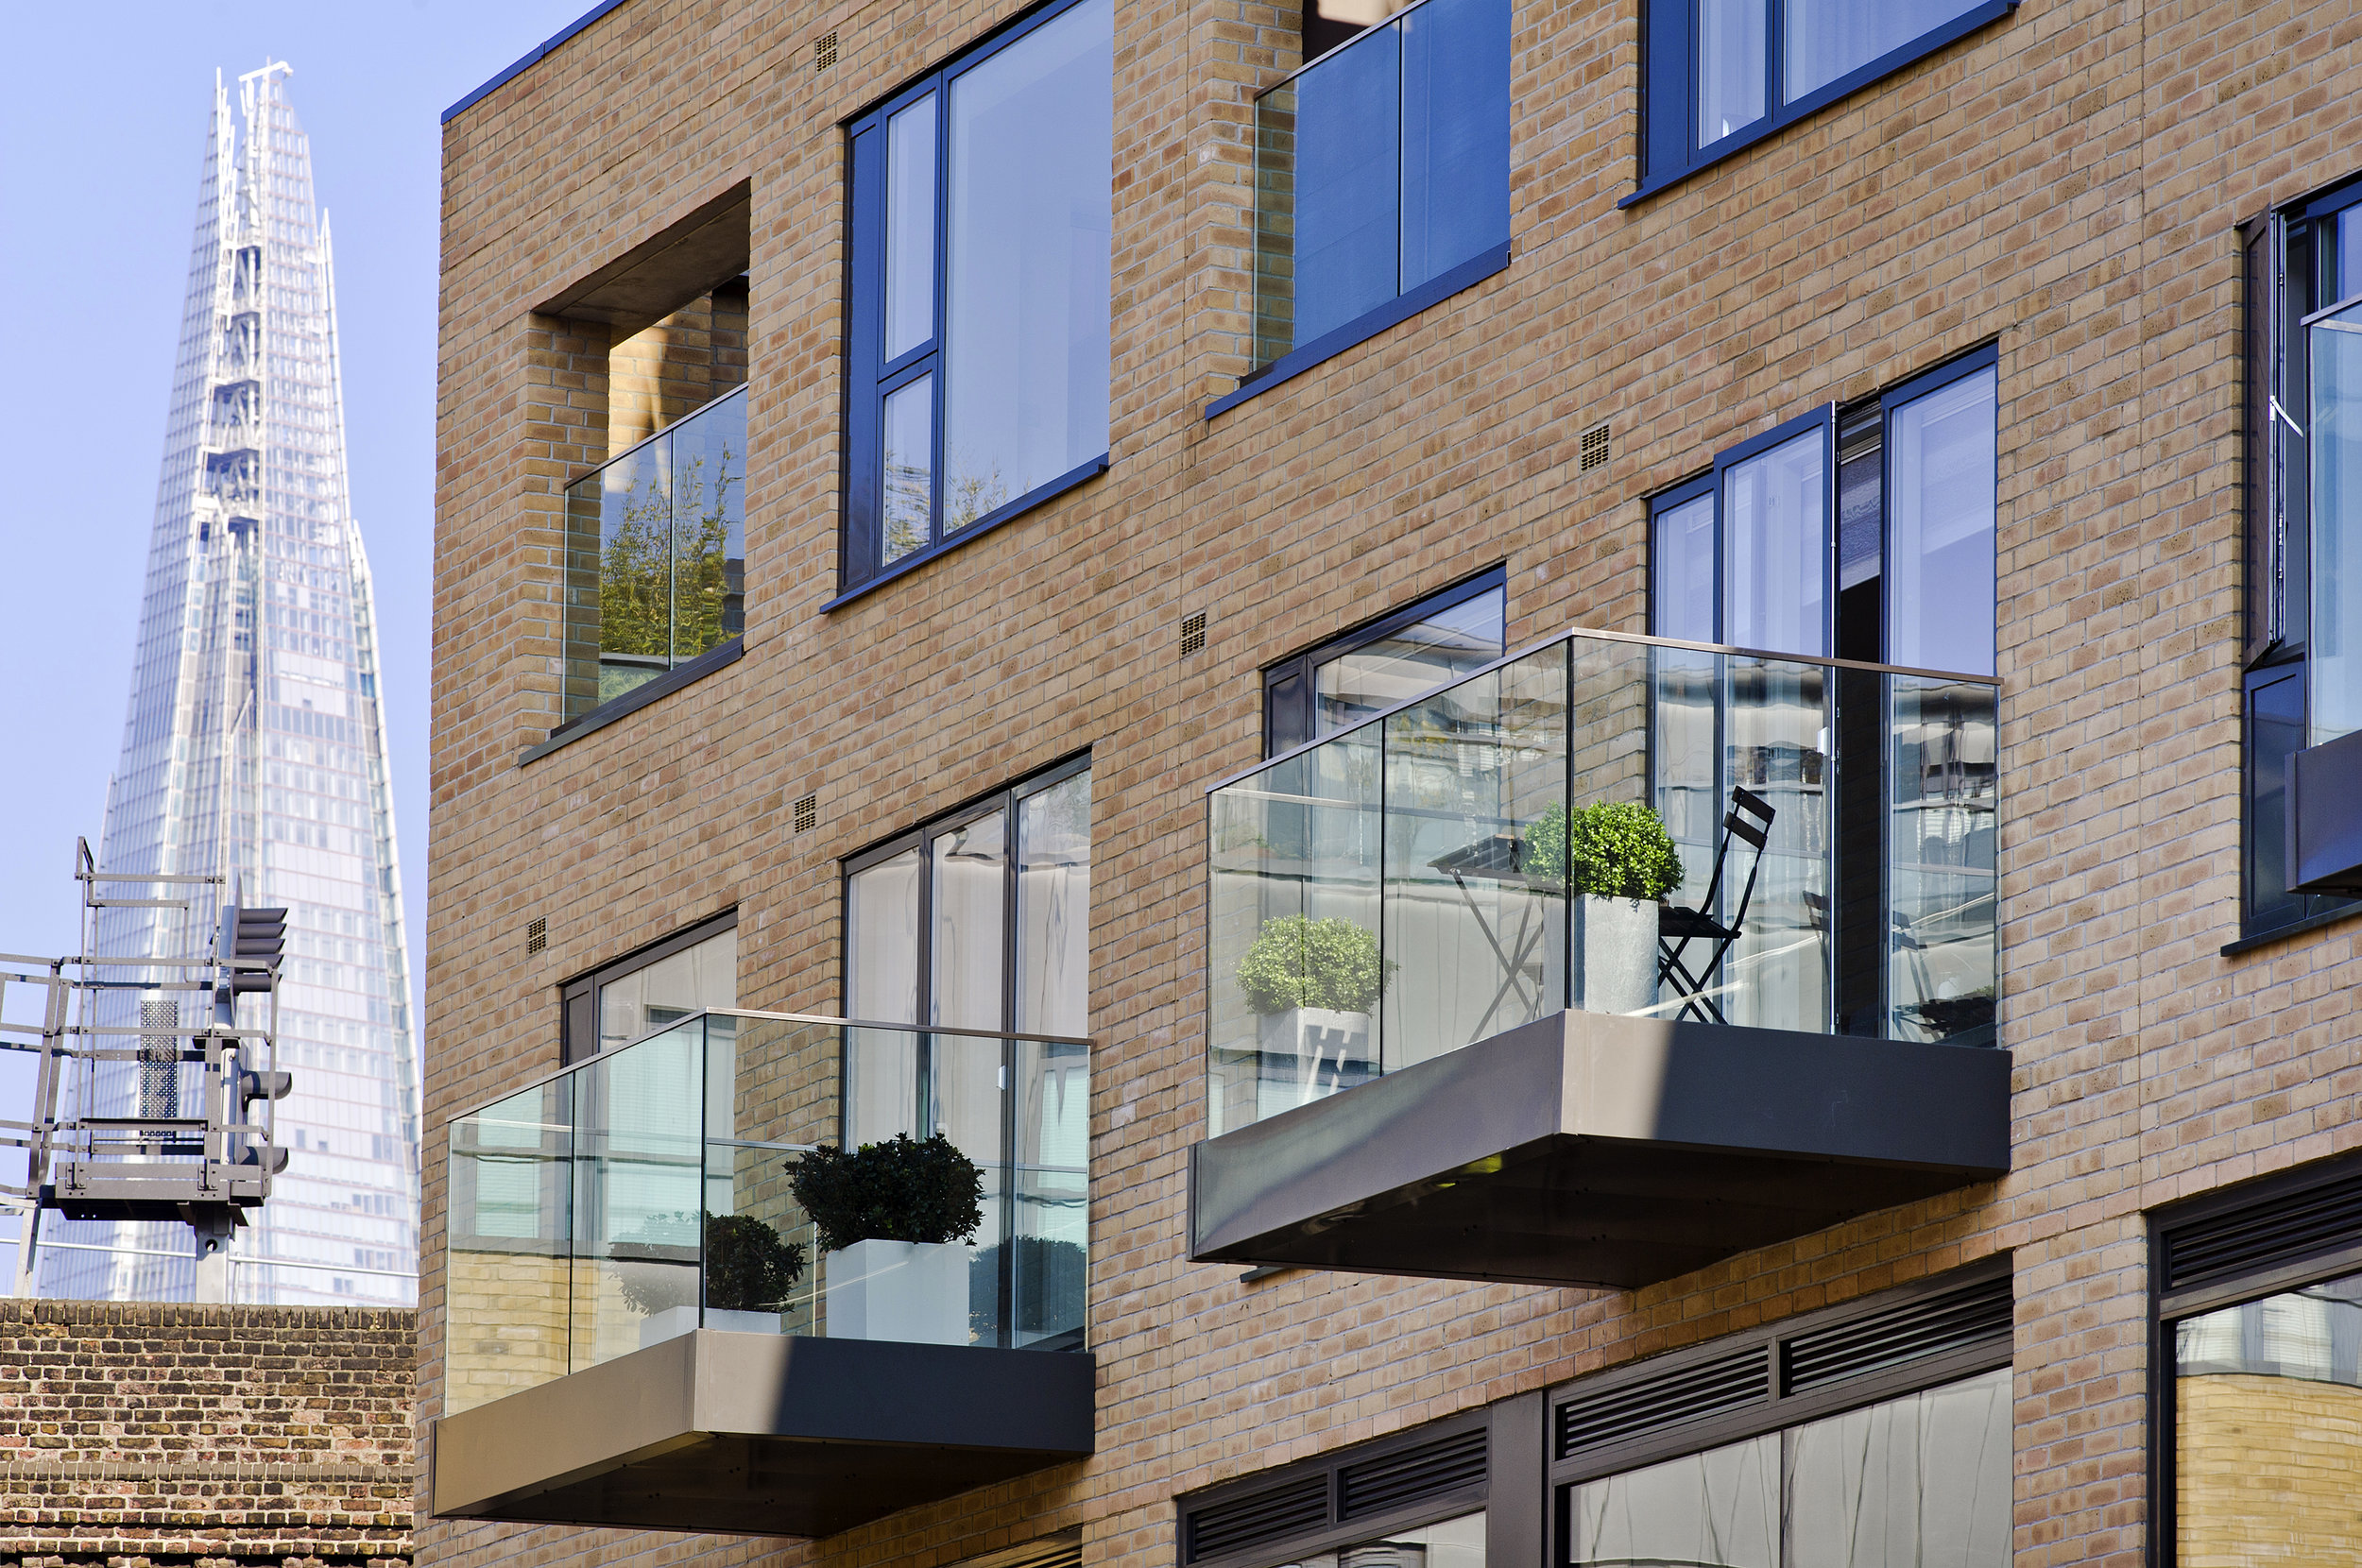 Award winning architecture practice thompson + baroni architects work on bespoke high end luxury architecture in central london chelsea kensington belgravia